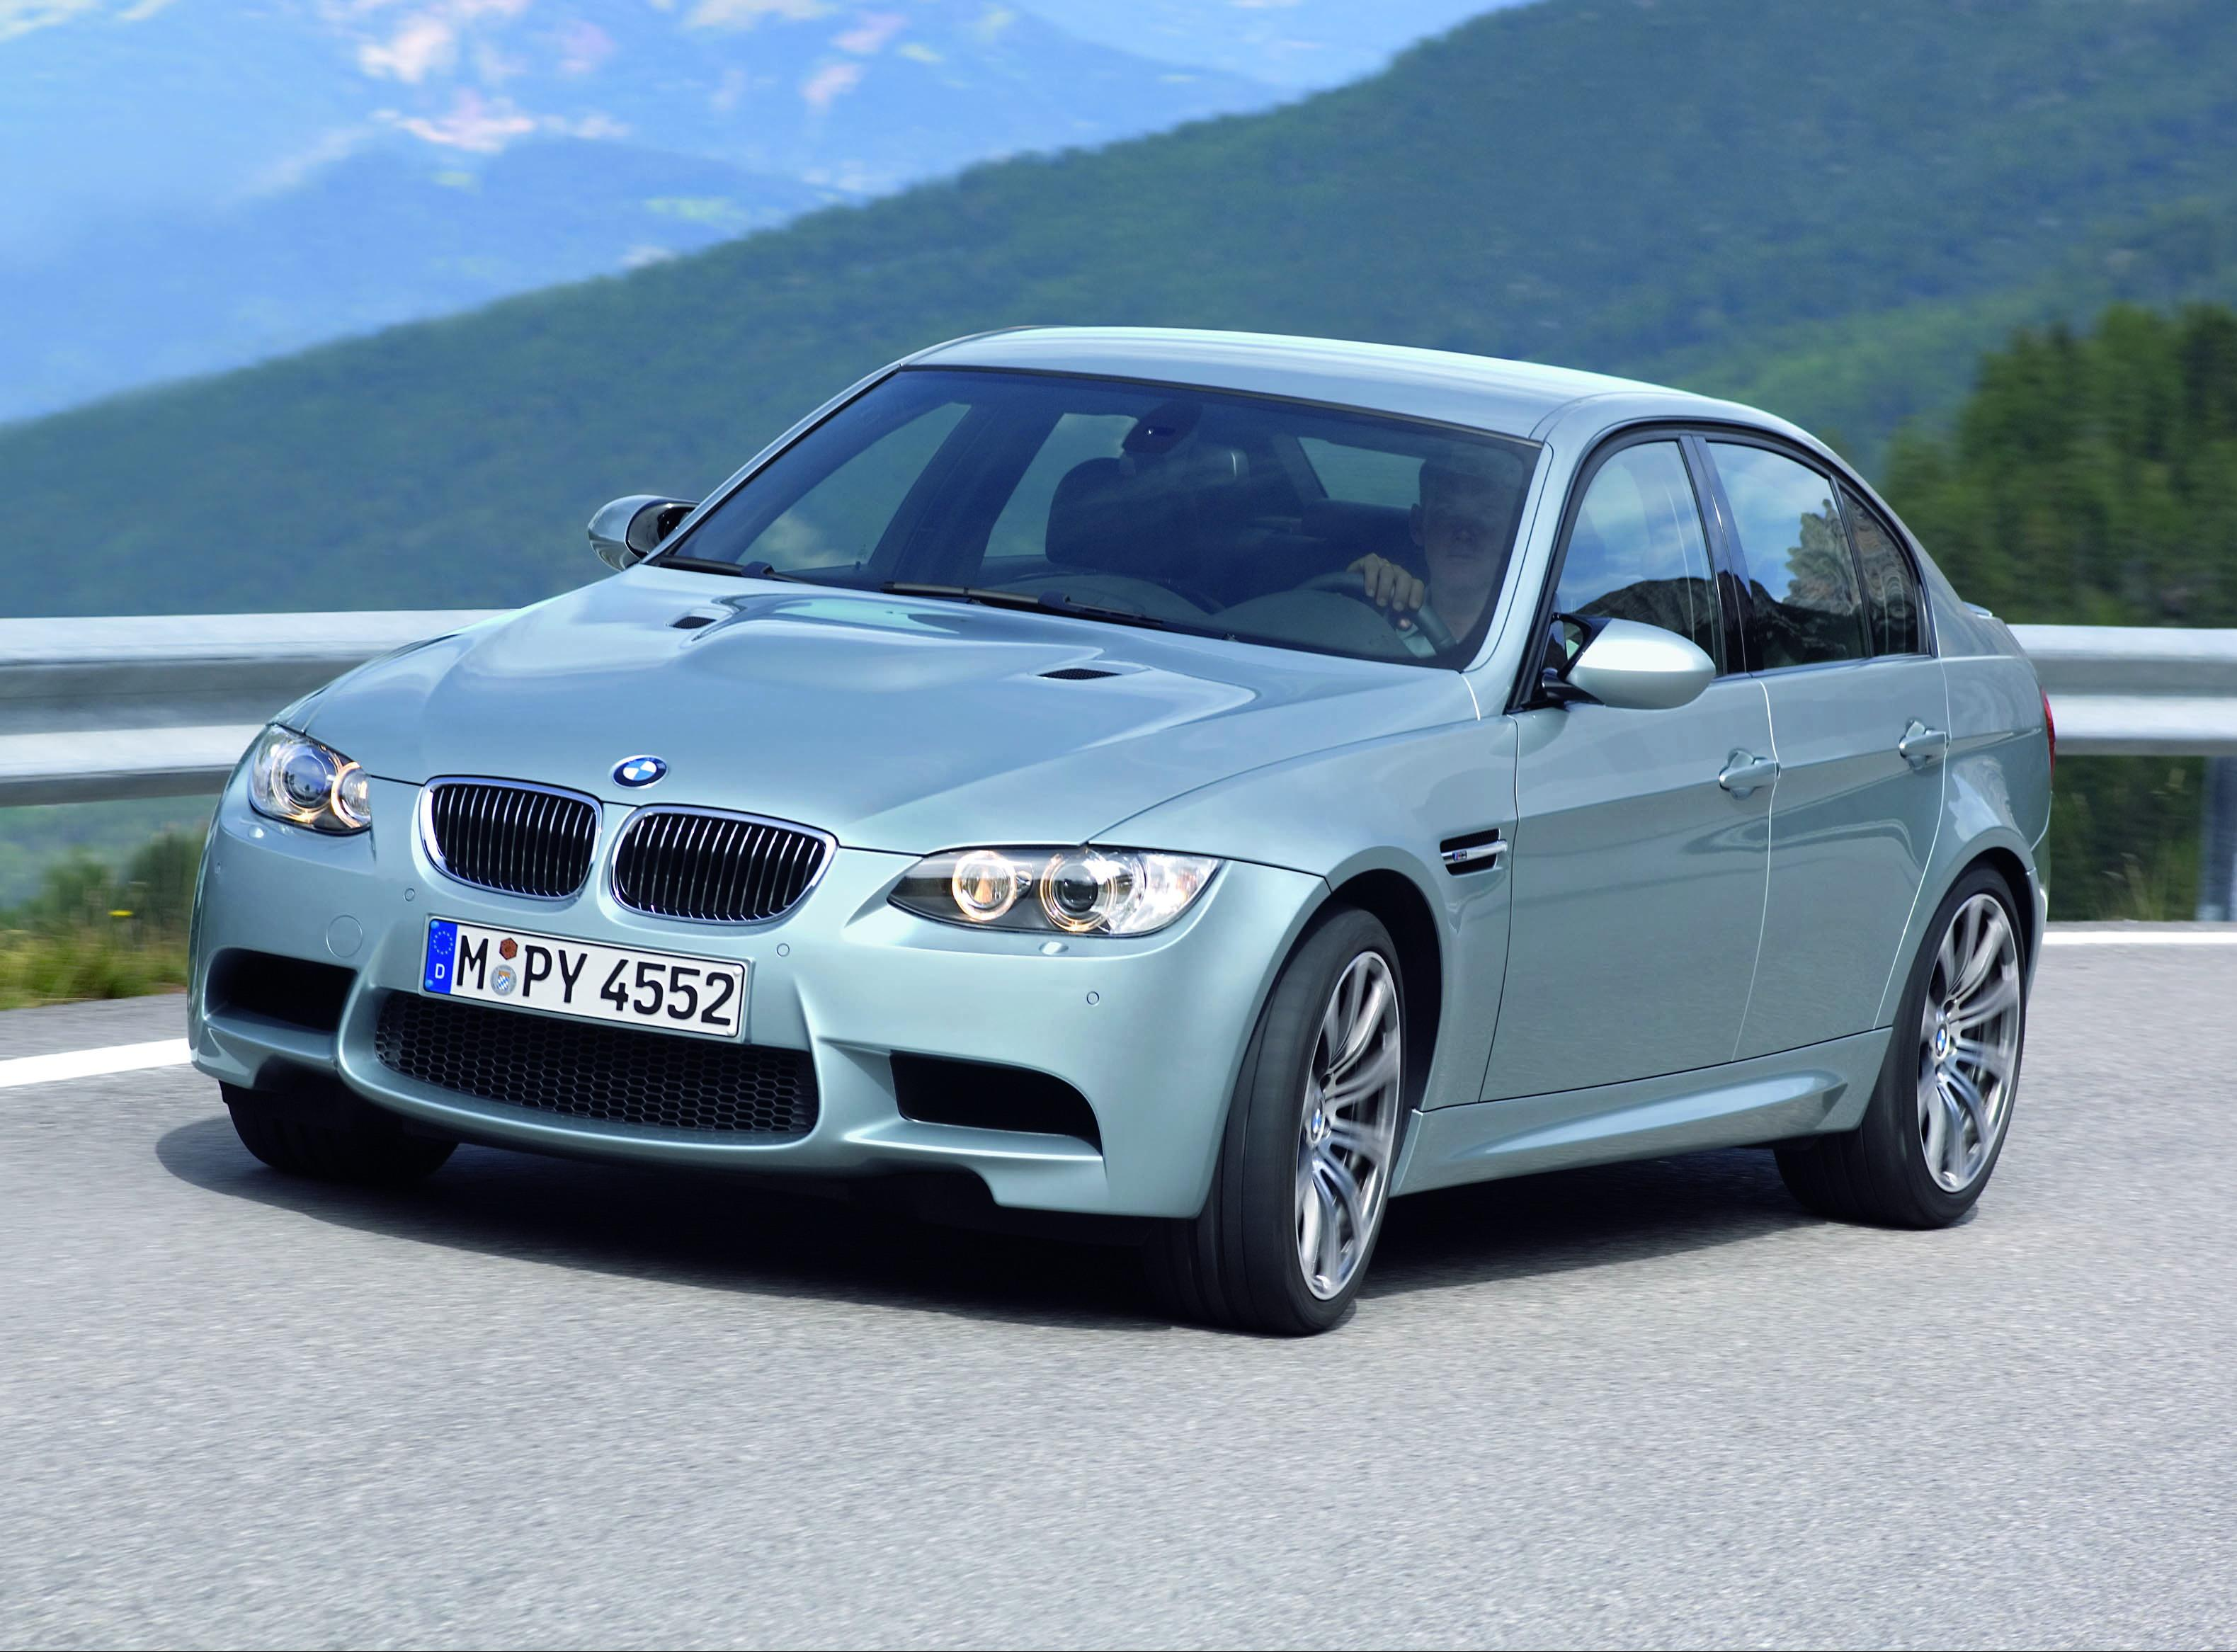 2008 Bmw M3 Sedan Top Speed